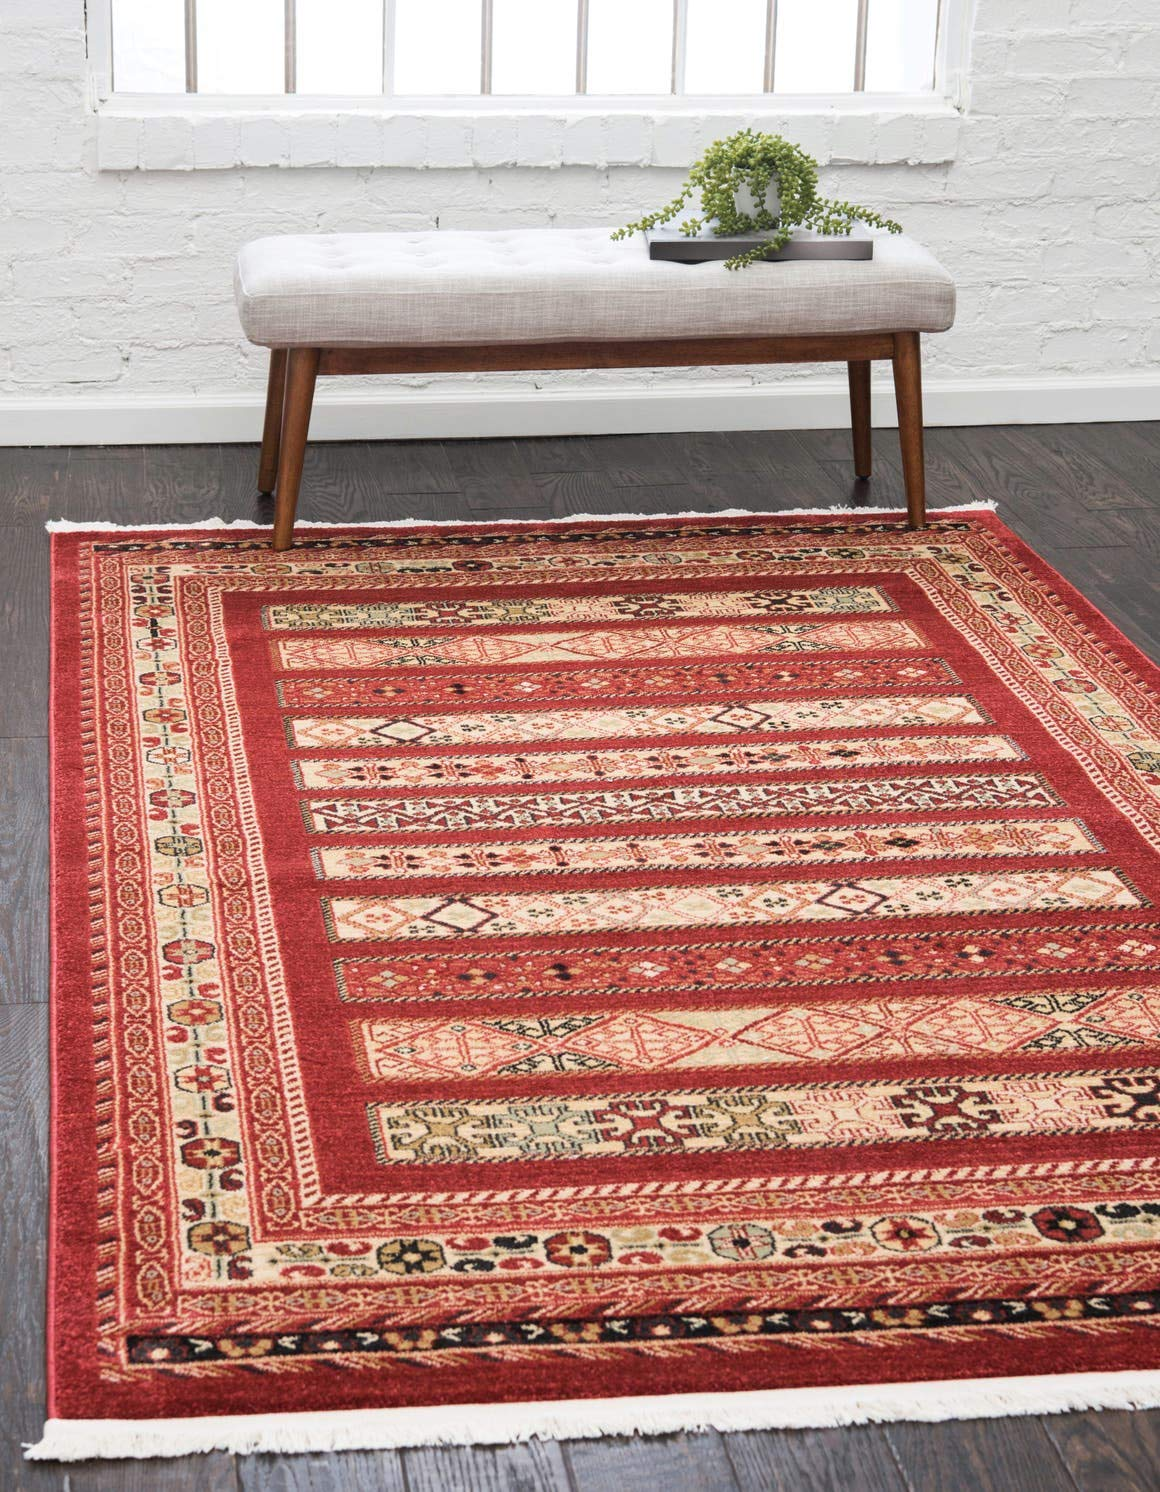 Unique Loom Fars Collection Tribal Modern Casual Rust Red Area Rug 6 0 x 9 0